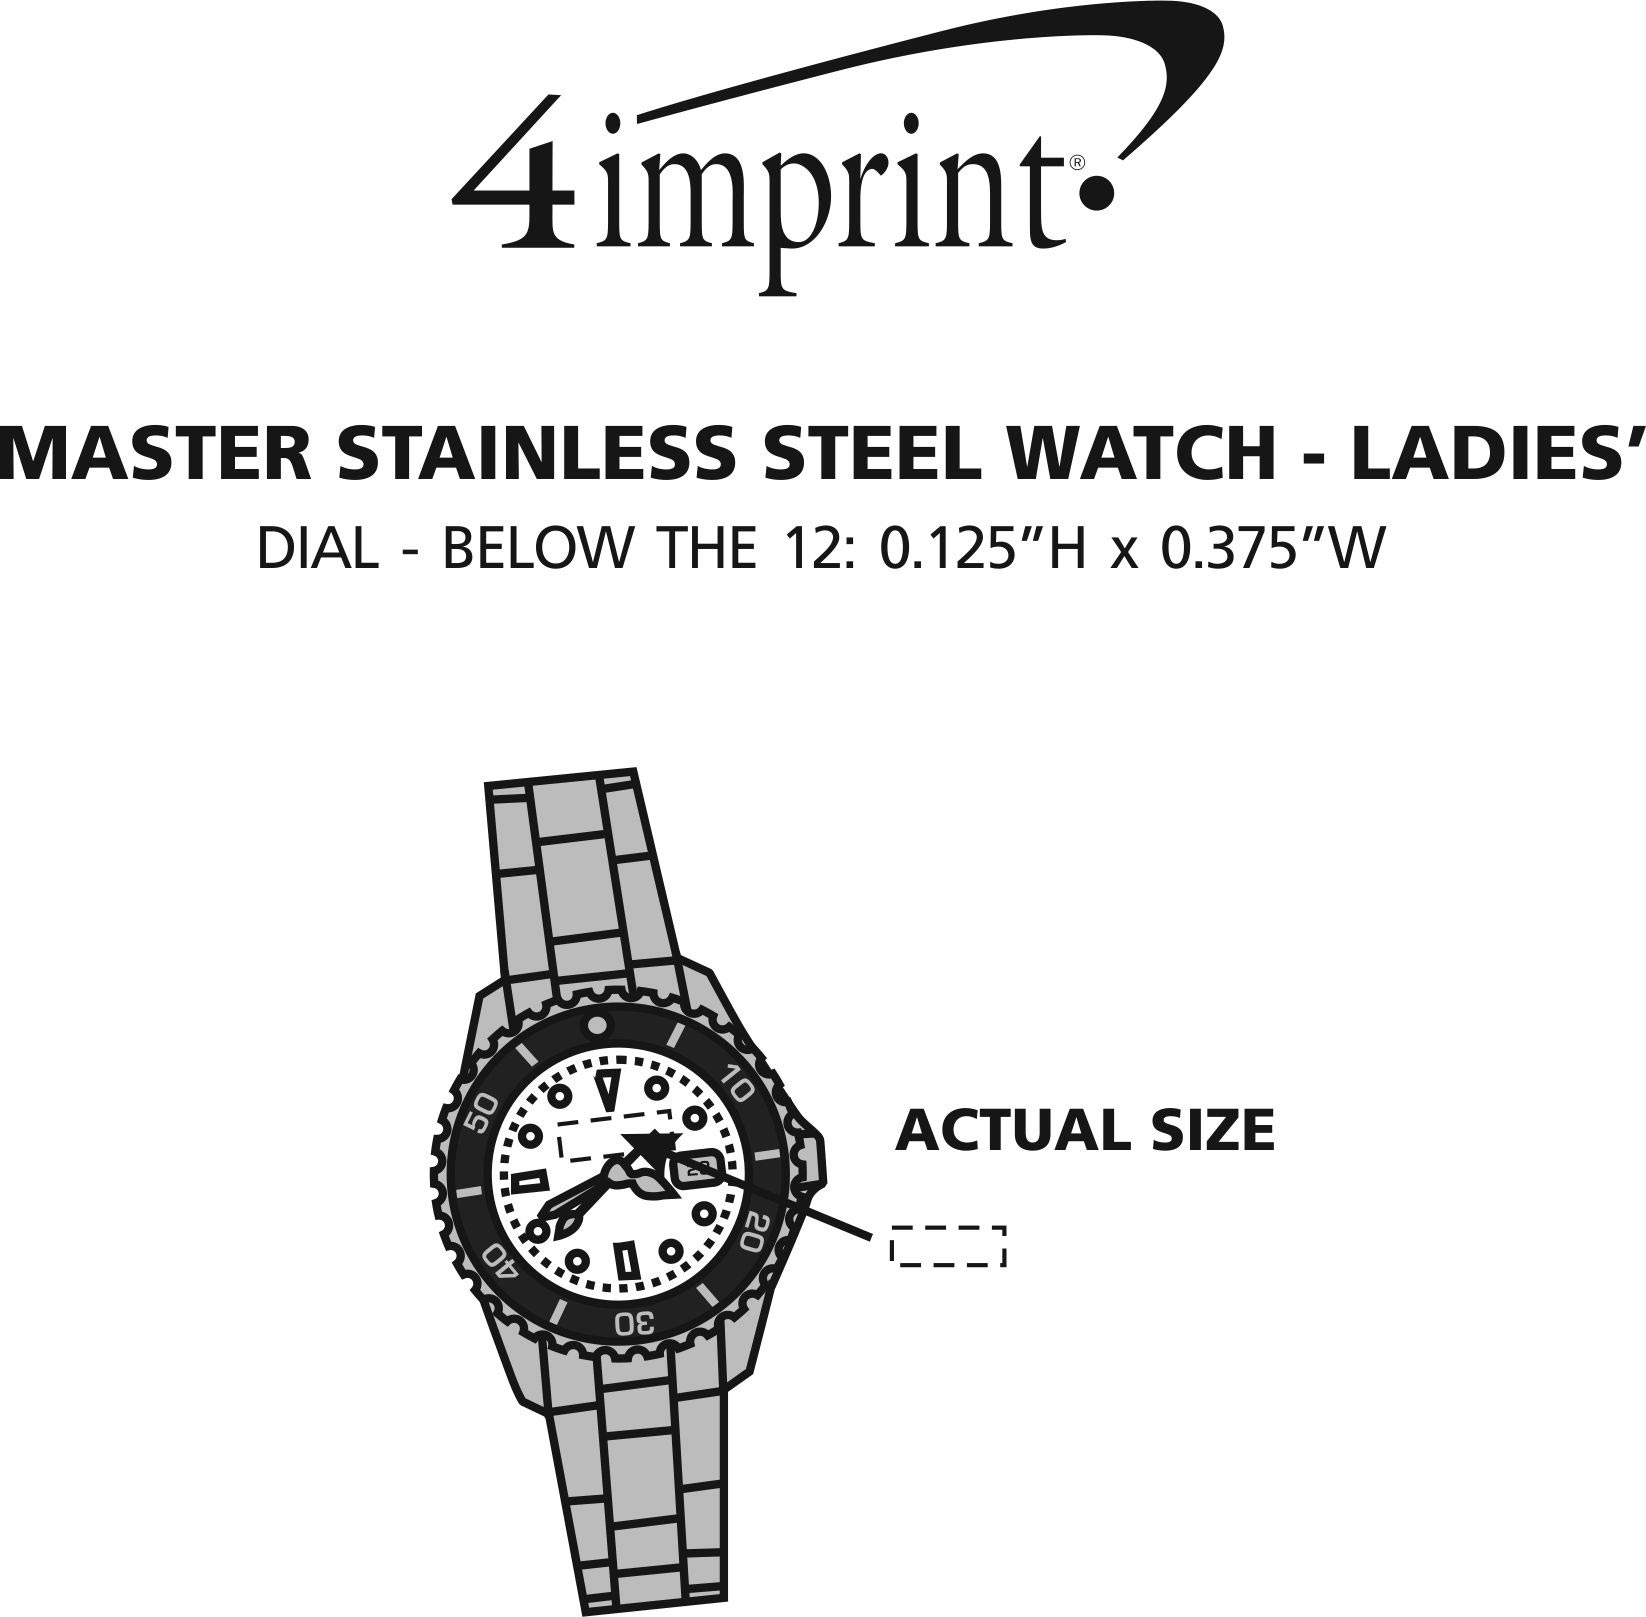 Imprint Area of Master Stainless Steel Watch - Ladies'